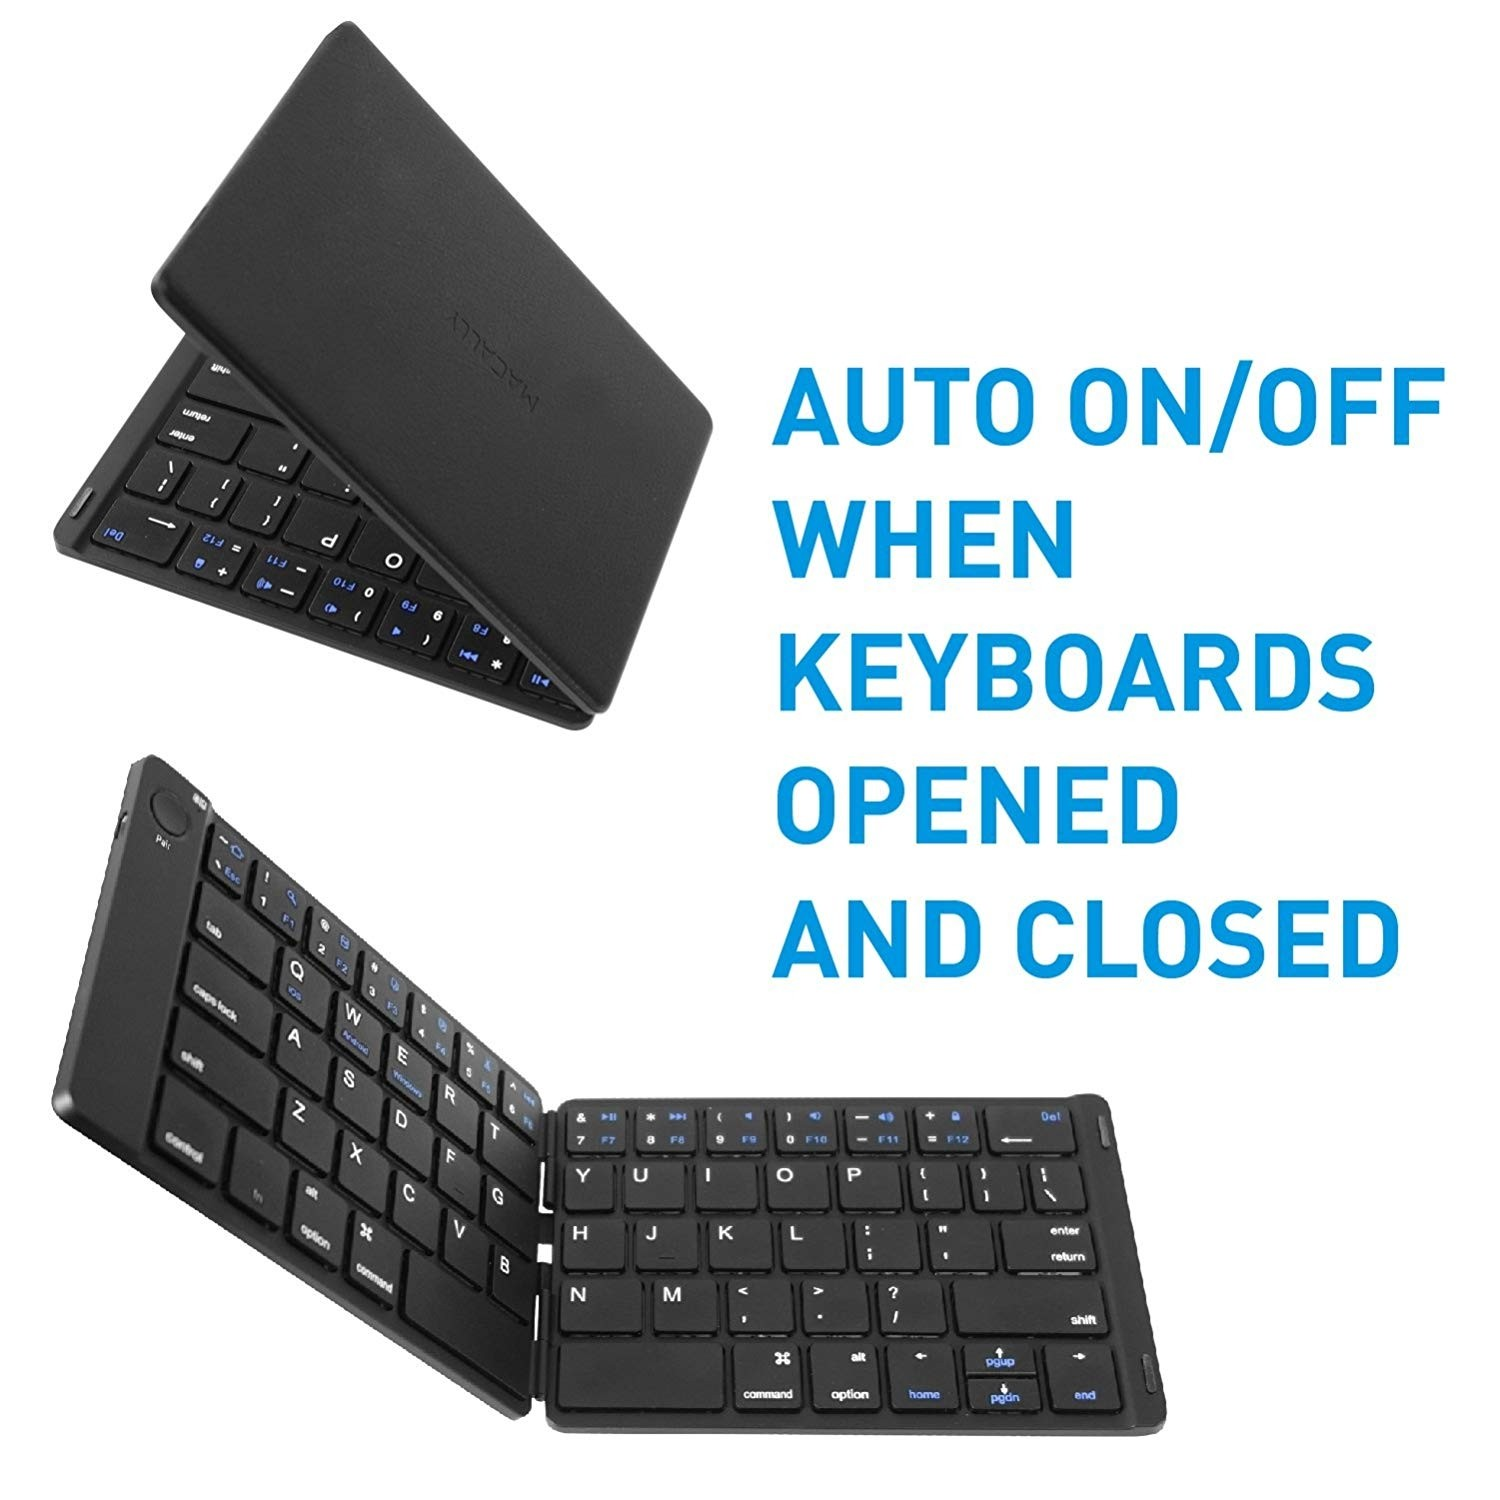 **DISCONTINUED** Macally Universal Foldable Bluetooth Keyboard Works with Apple iPhone/iPad iOS, Android Tablets & Smartphones, Windows Laptop Computers, Smart TVs, etc., PMOBILEKEY